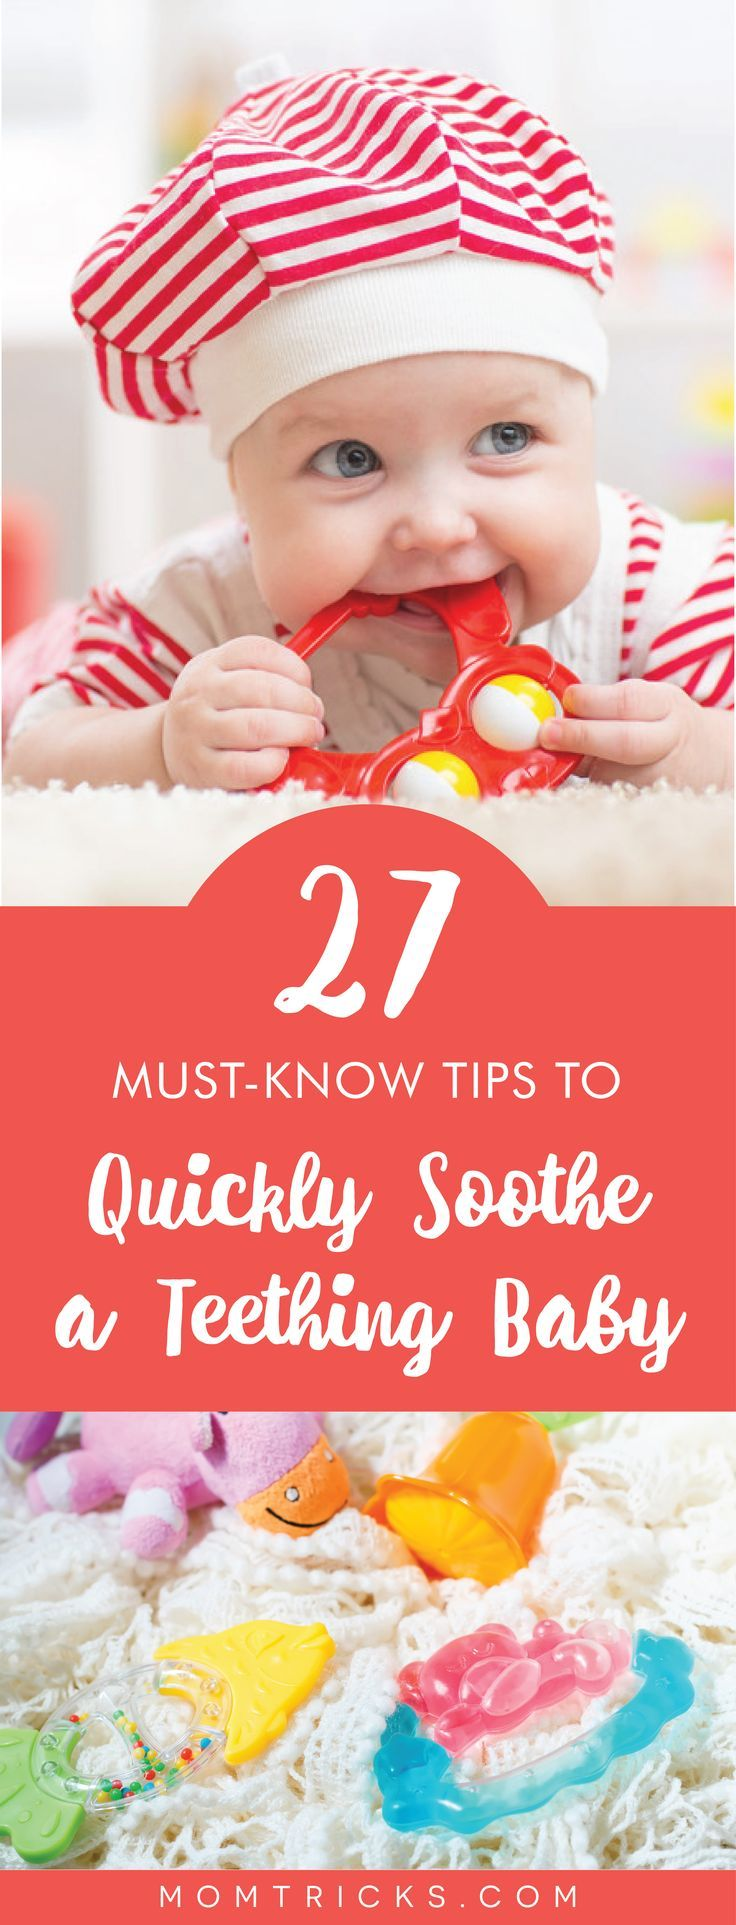 Looking for quick ways to help relieve your teething little one? Here are 27 tried-and-tested methods you can try right now.